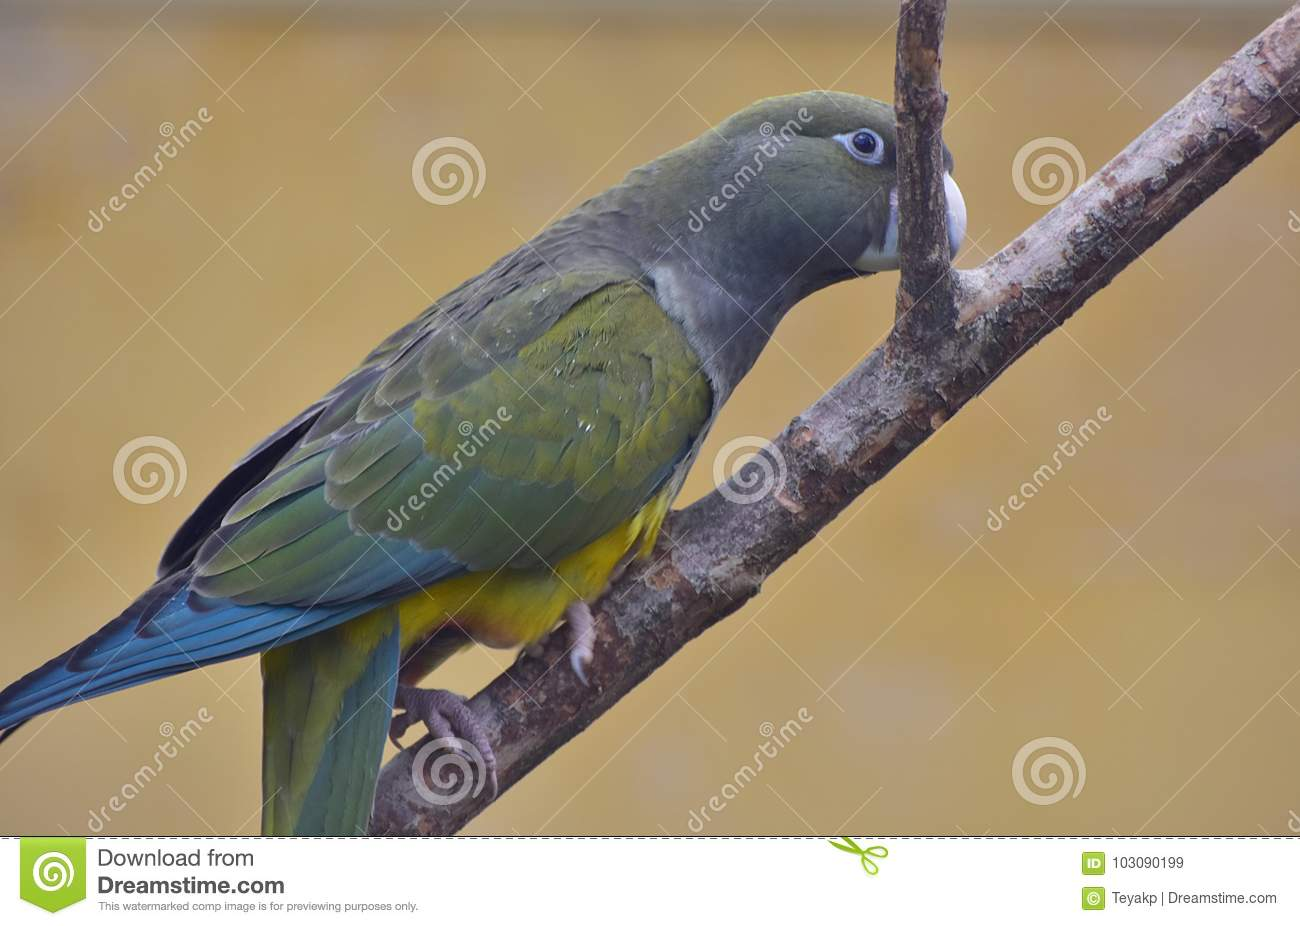 Parrot sitting on a branch